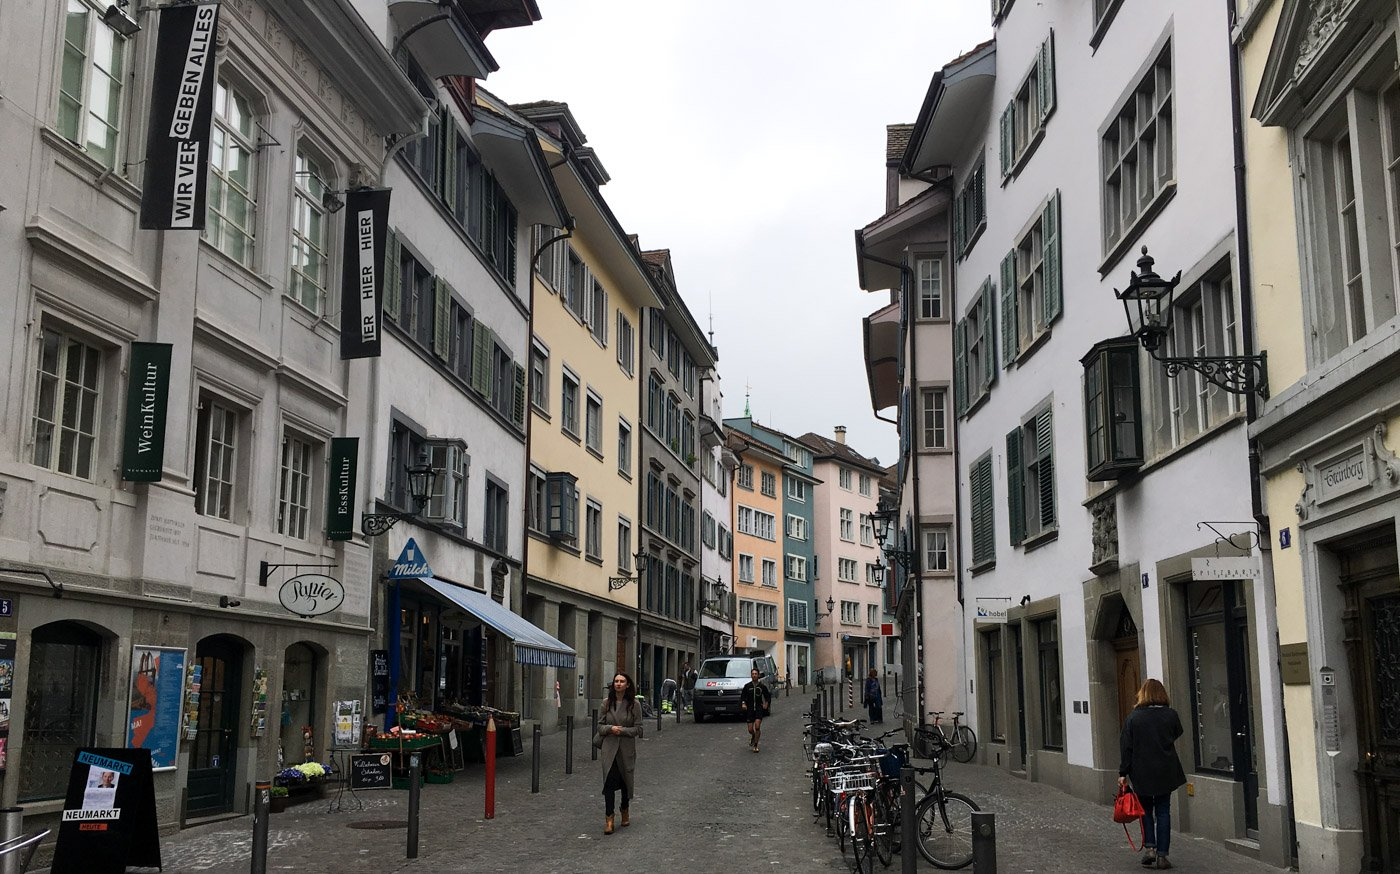 If you're planning out your Switzerland trip and trying to pack everything in, here's a great way to visit Zurich in one day.